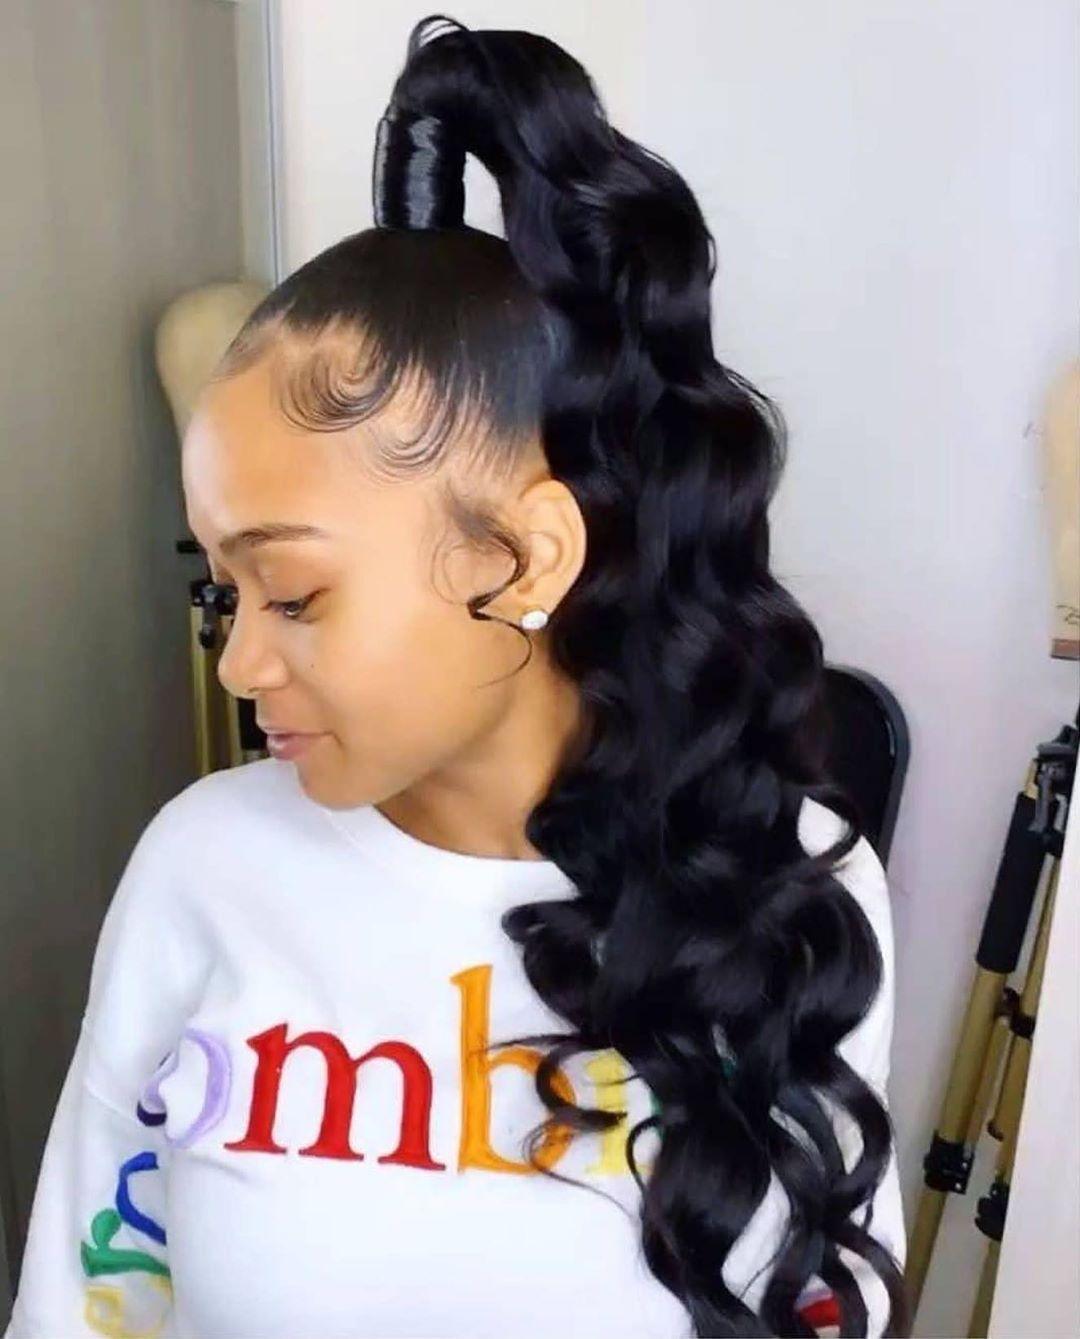 Estelle On Instagram Still Ponytail Season Yay Or Nay Tag Stylist Who Rock This High Ponytail Hairstyles Hair Ponytail Styles Weave Ponytail Hairstyles